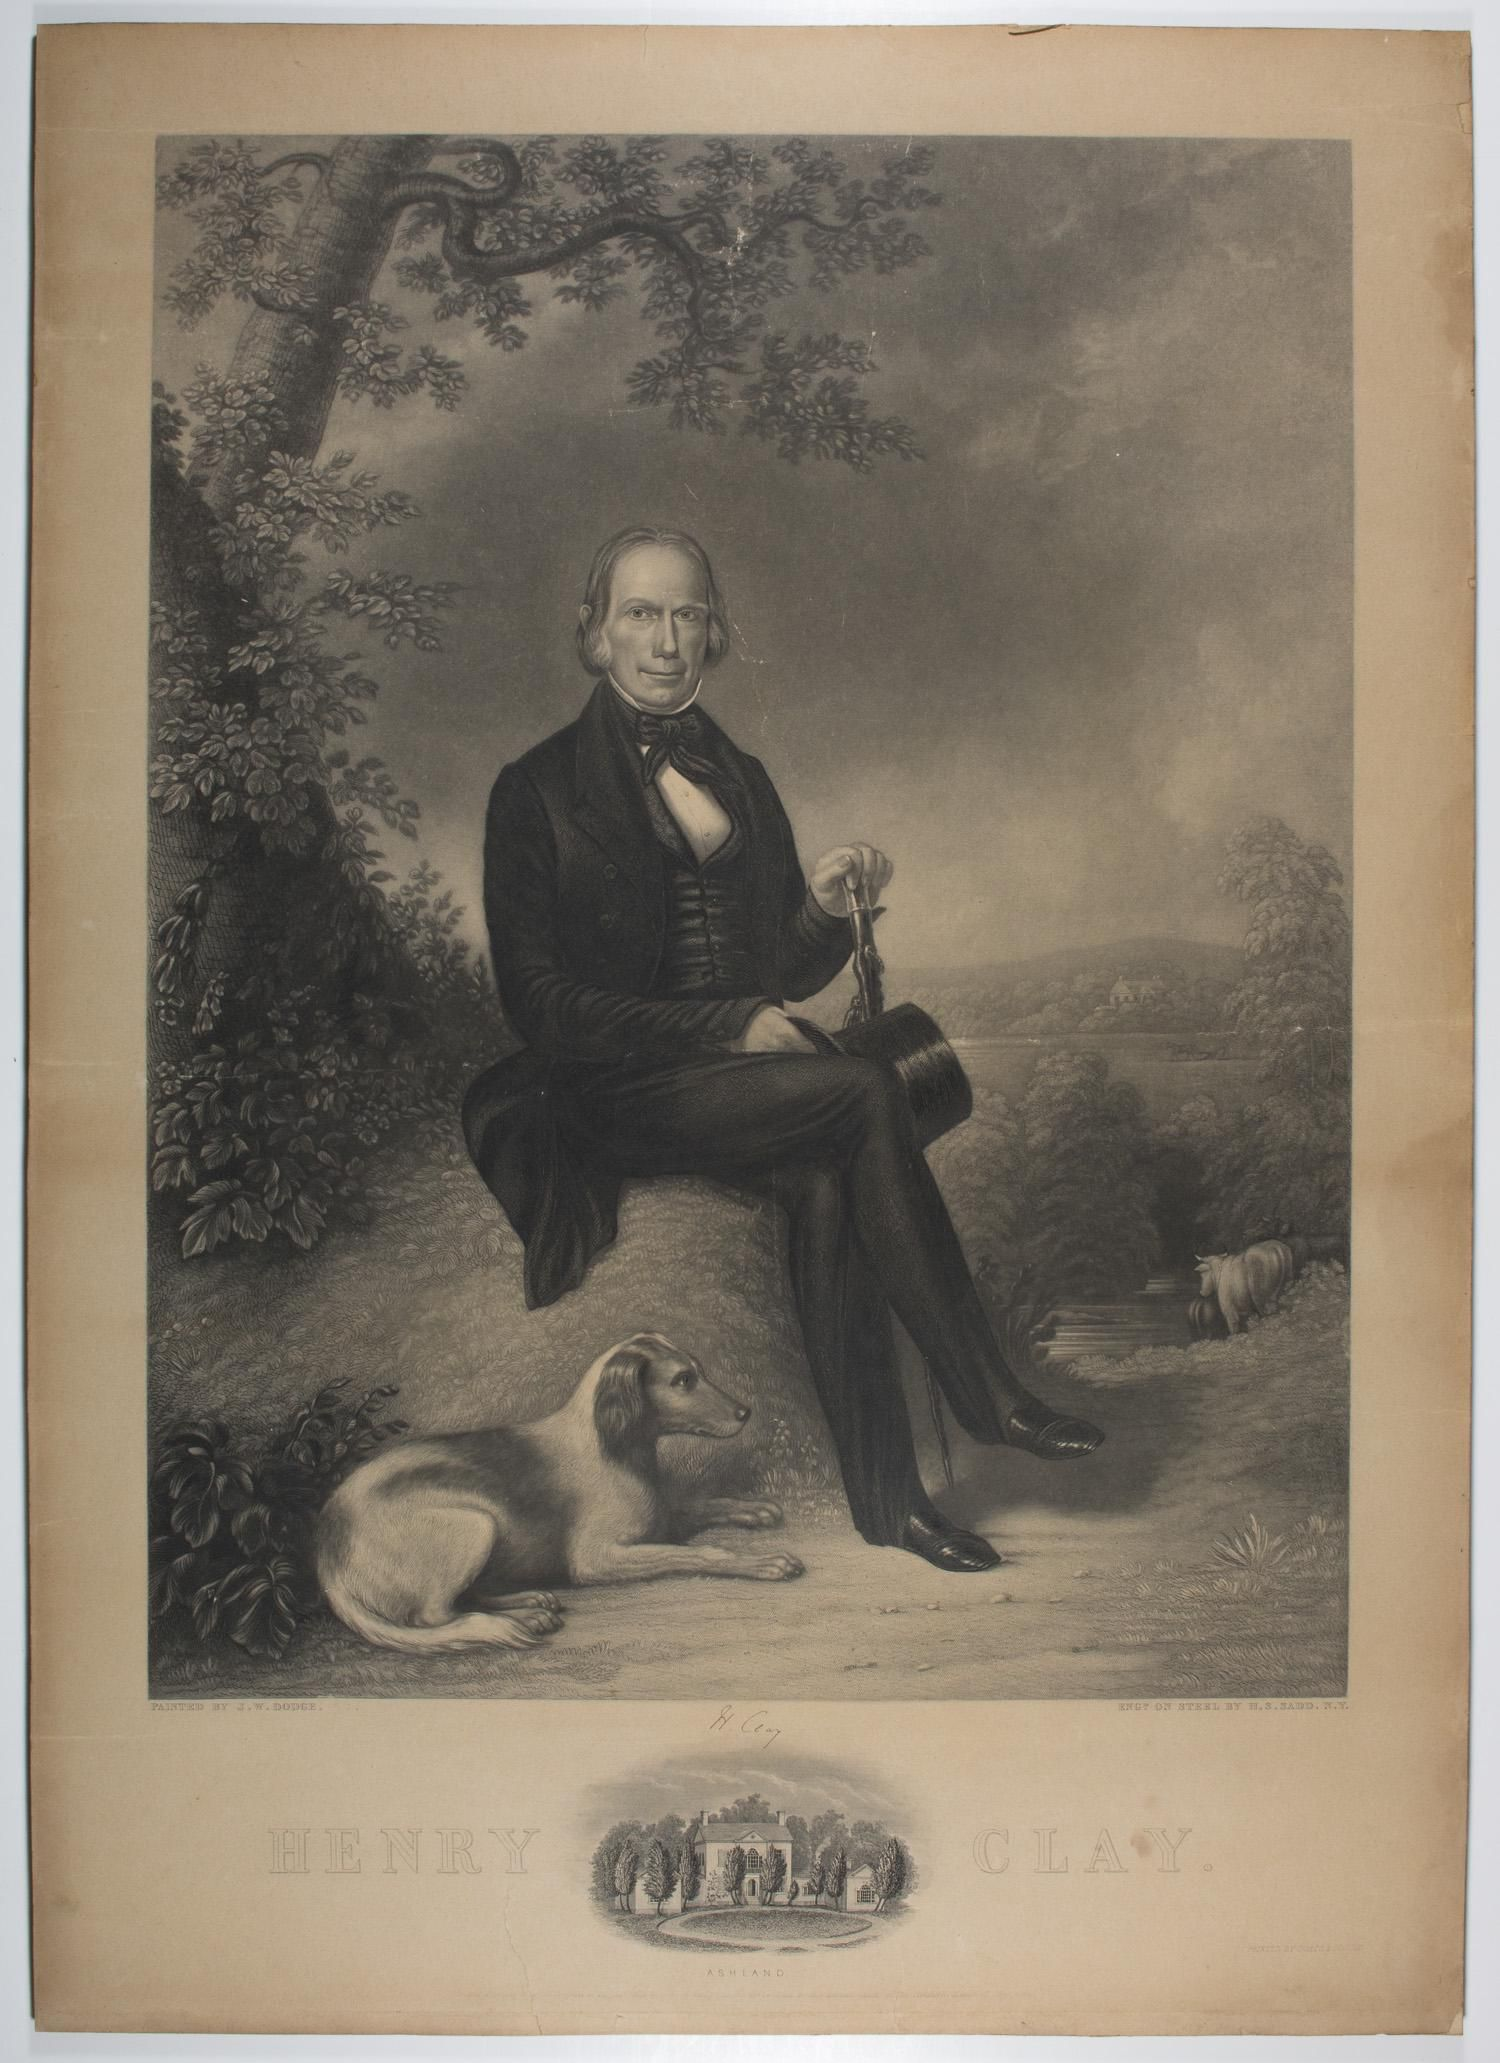 ENGRAVING: 'HENRY CLAY / PAINTED BY J.W. DODGE'